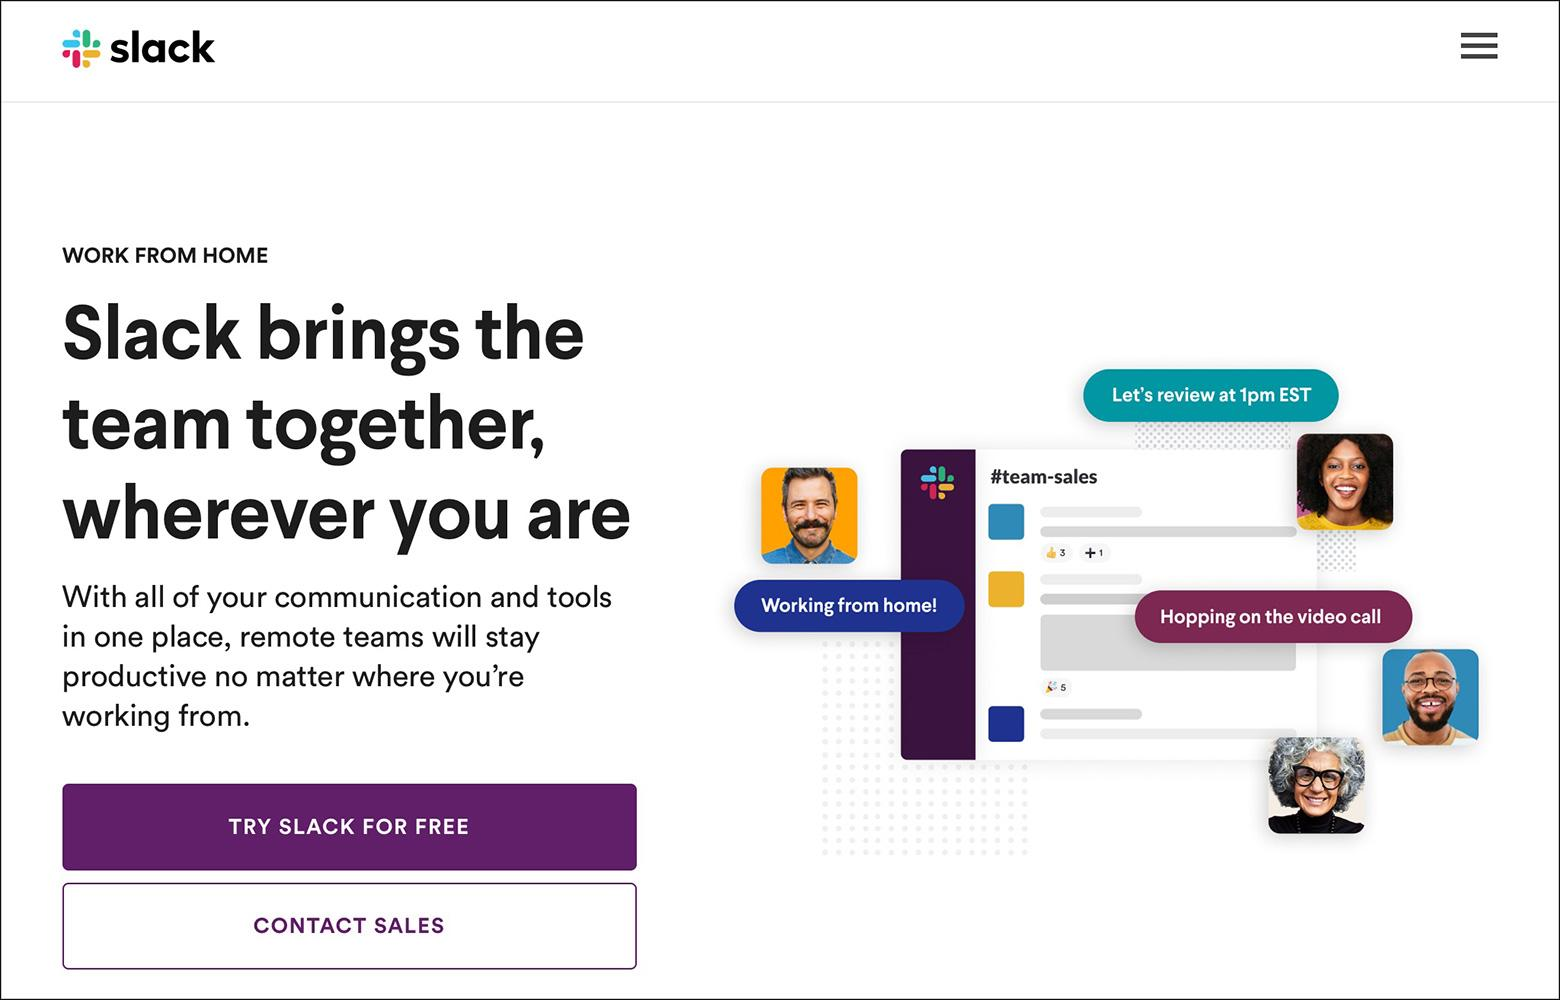 Slack follows homepage design best practices to create a user-focused design